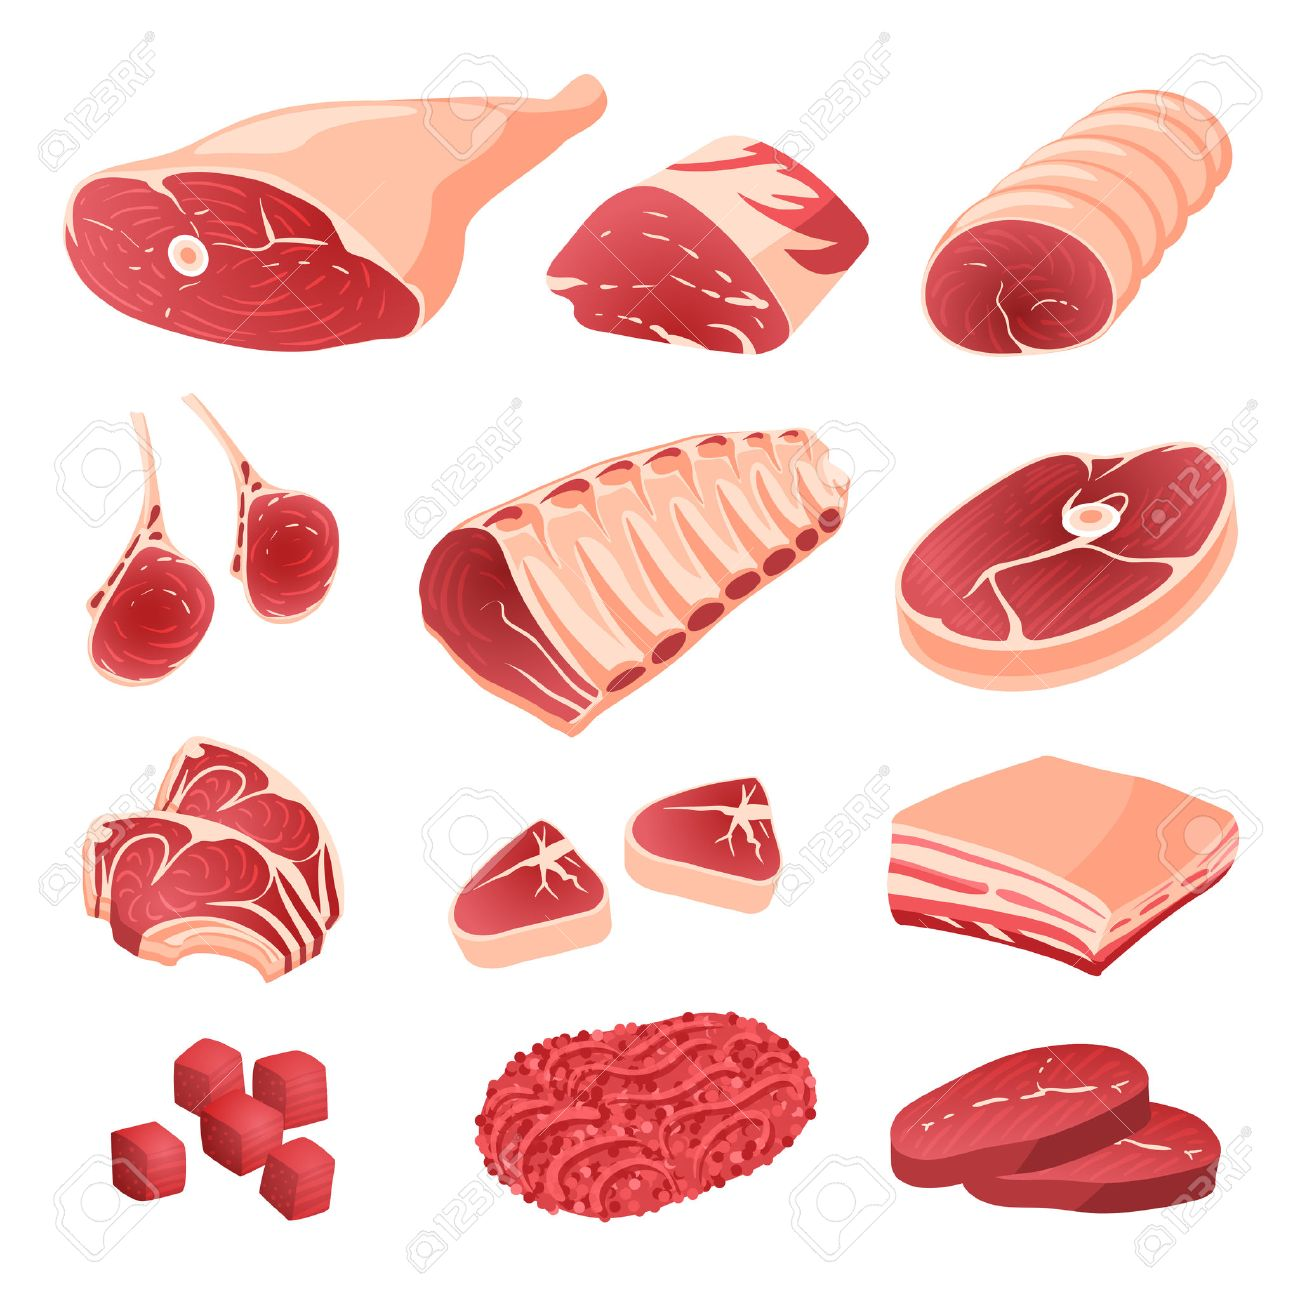 set of cartoon food meat cuts assortment beef pork lamb royalty free cliparts vectors and stock illustration image 53858117 set of cartoon food meat cuts assortment beef pork lamb